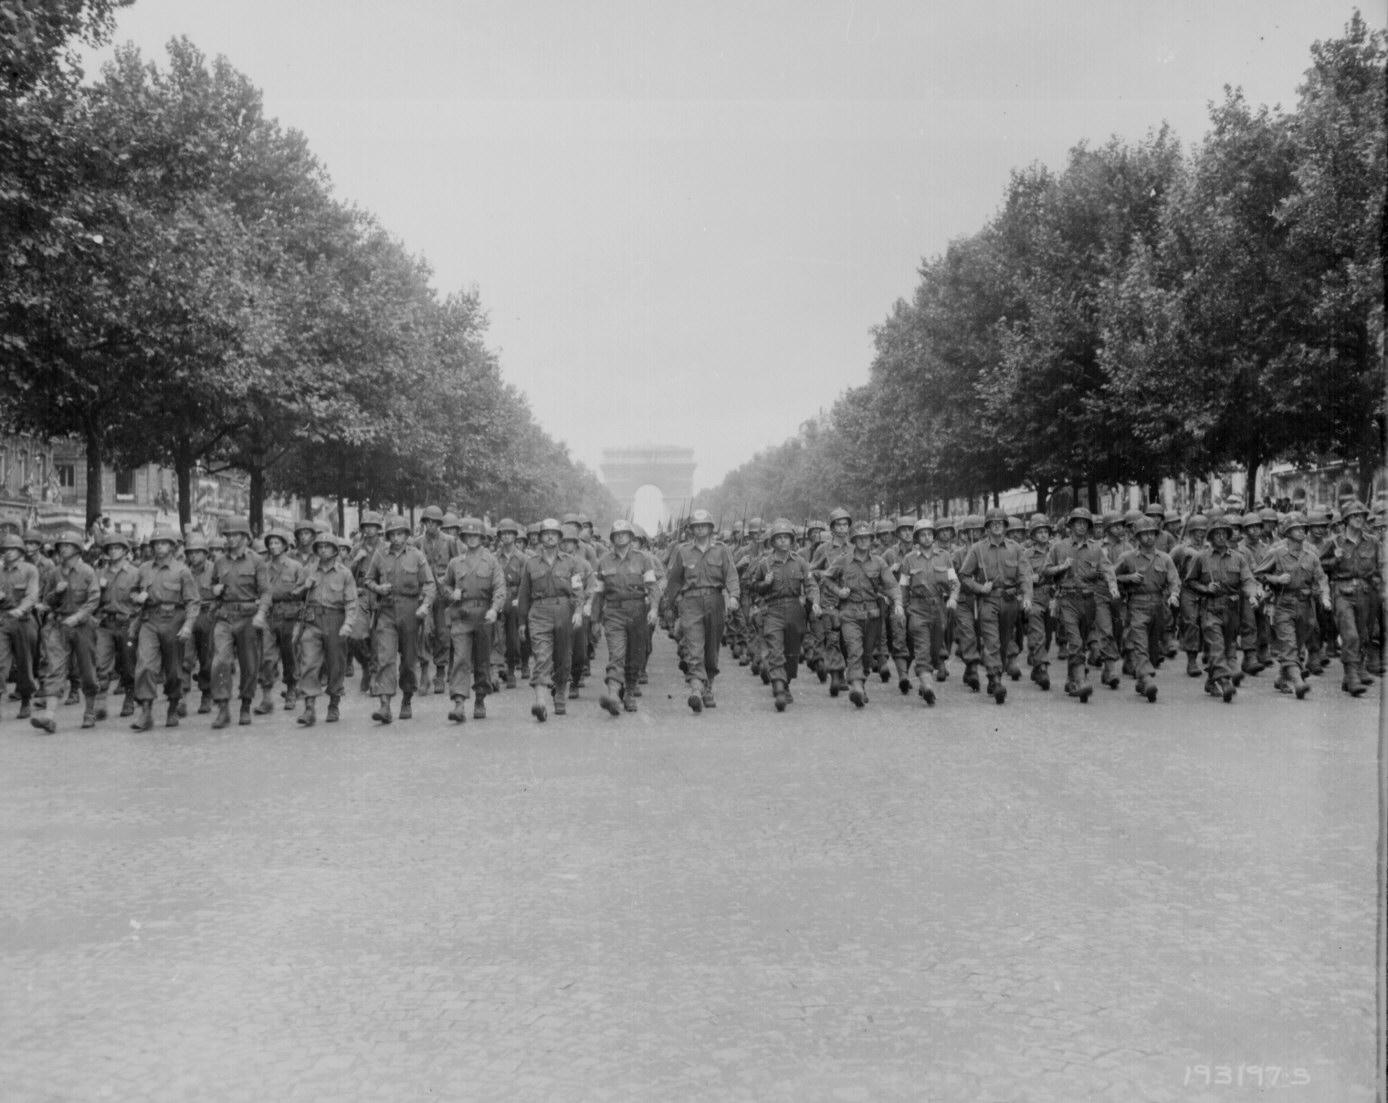 Victory Parade in Paris, France